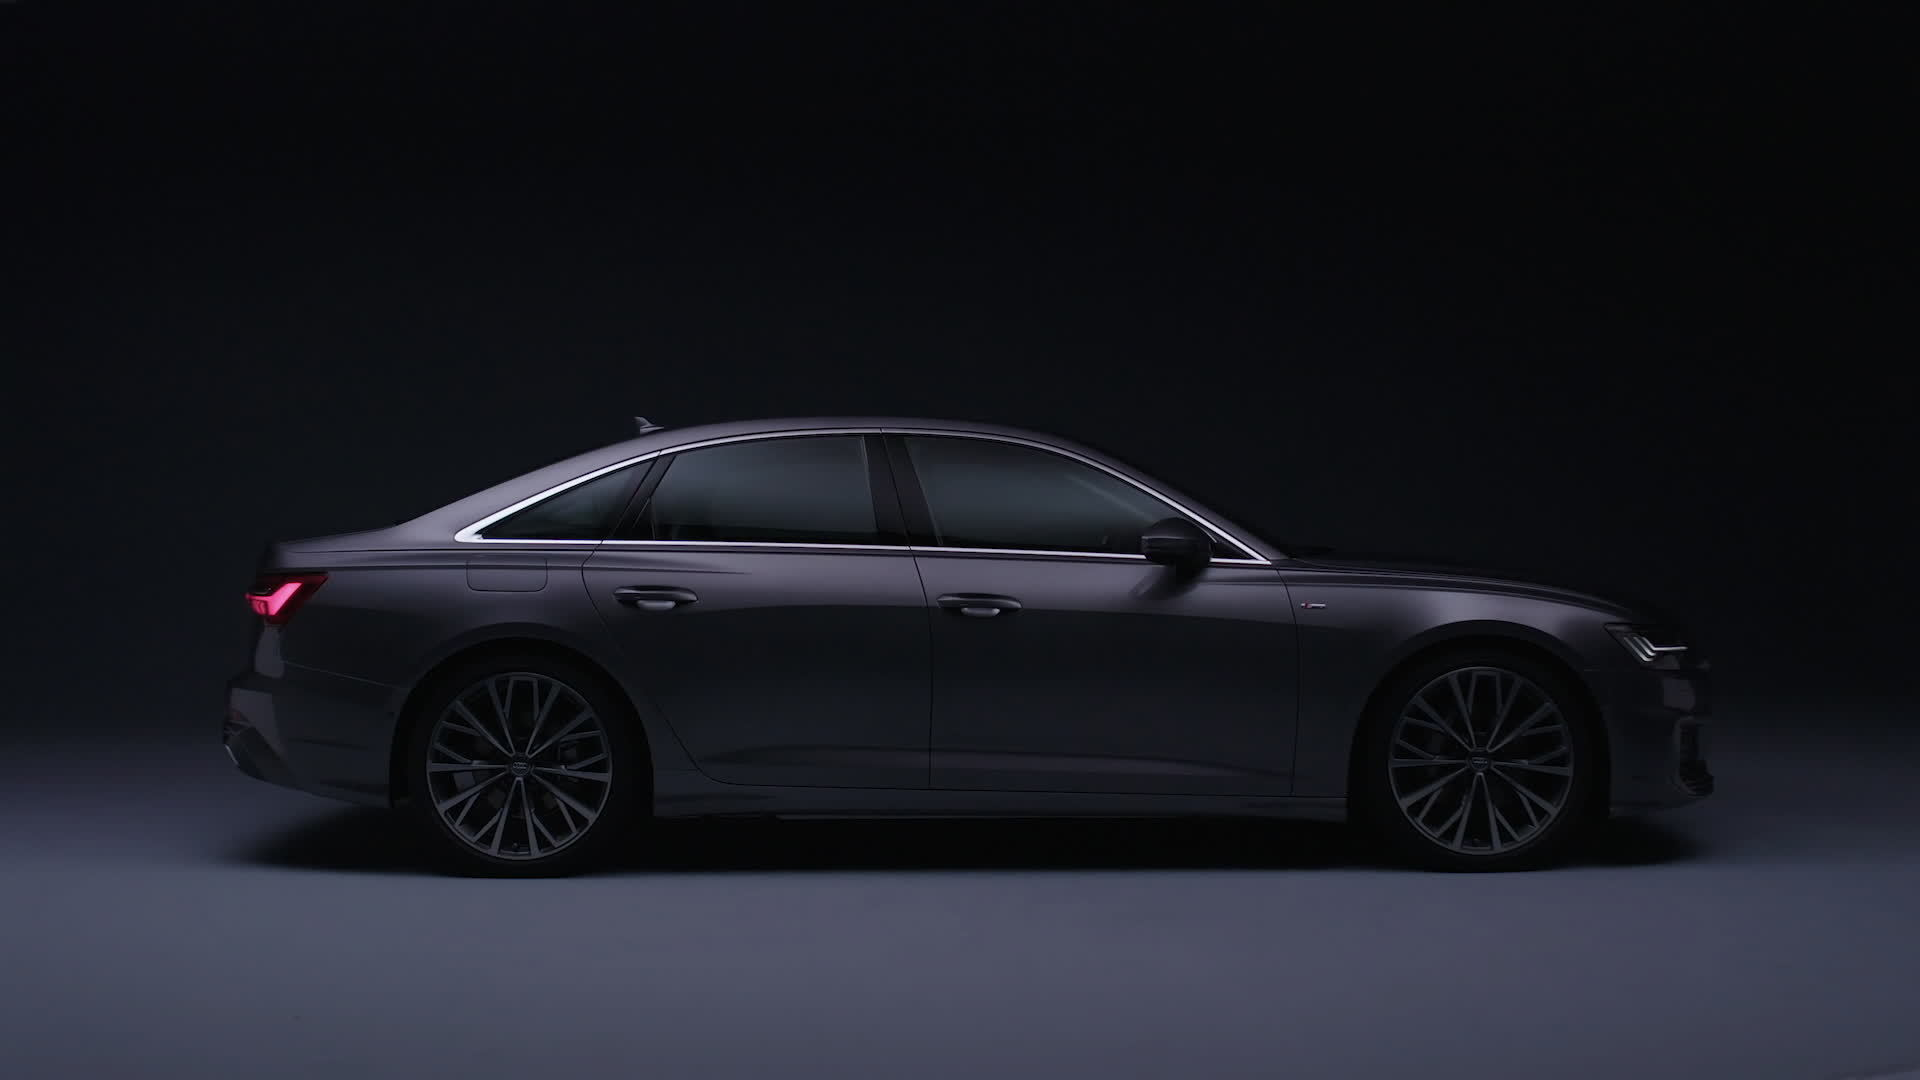 Ready for boarding: the new business class in the Audi A6